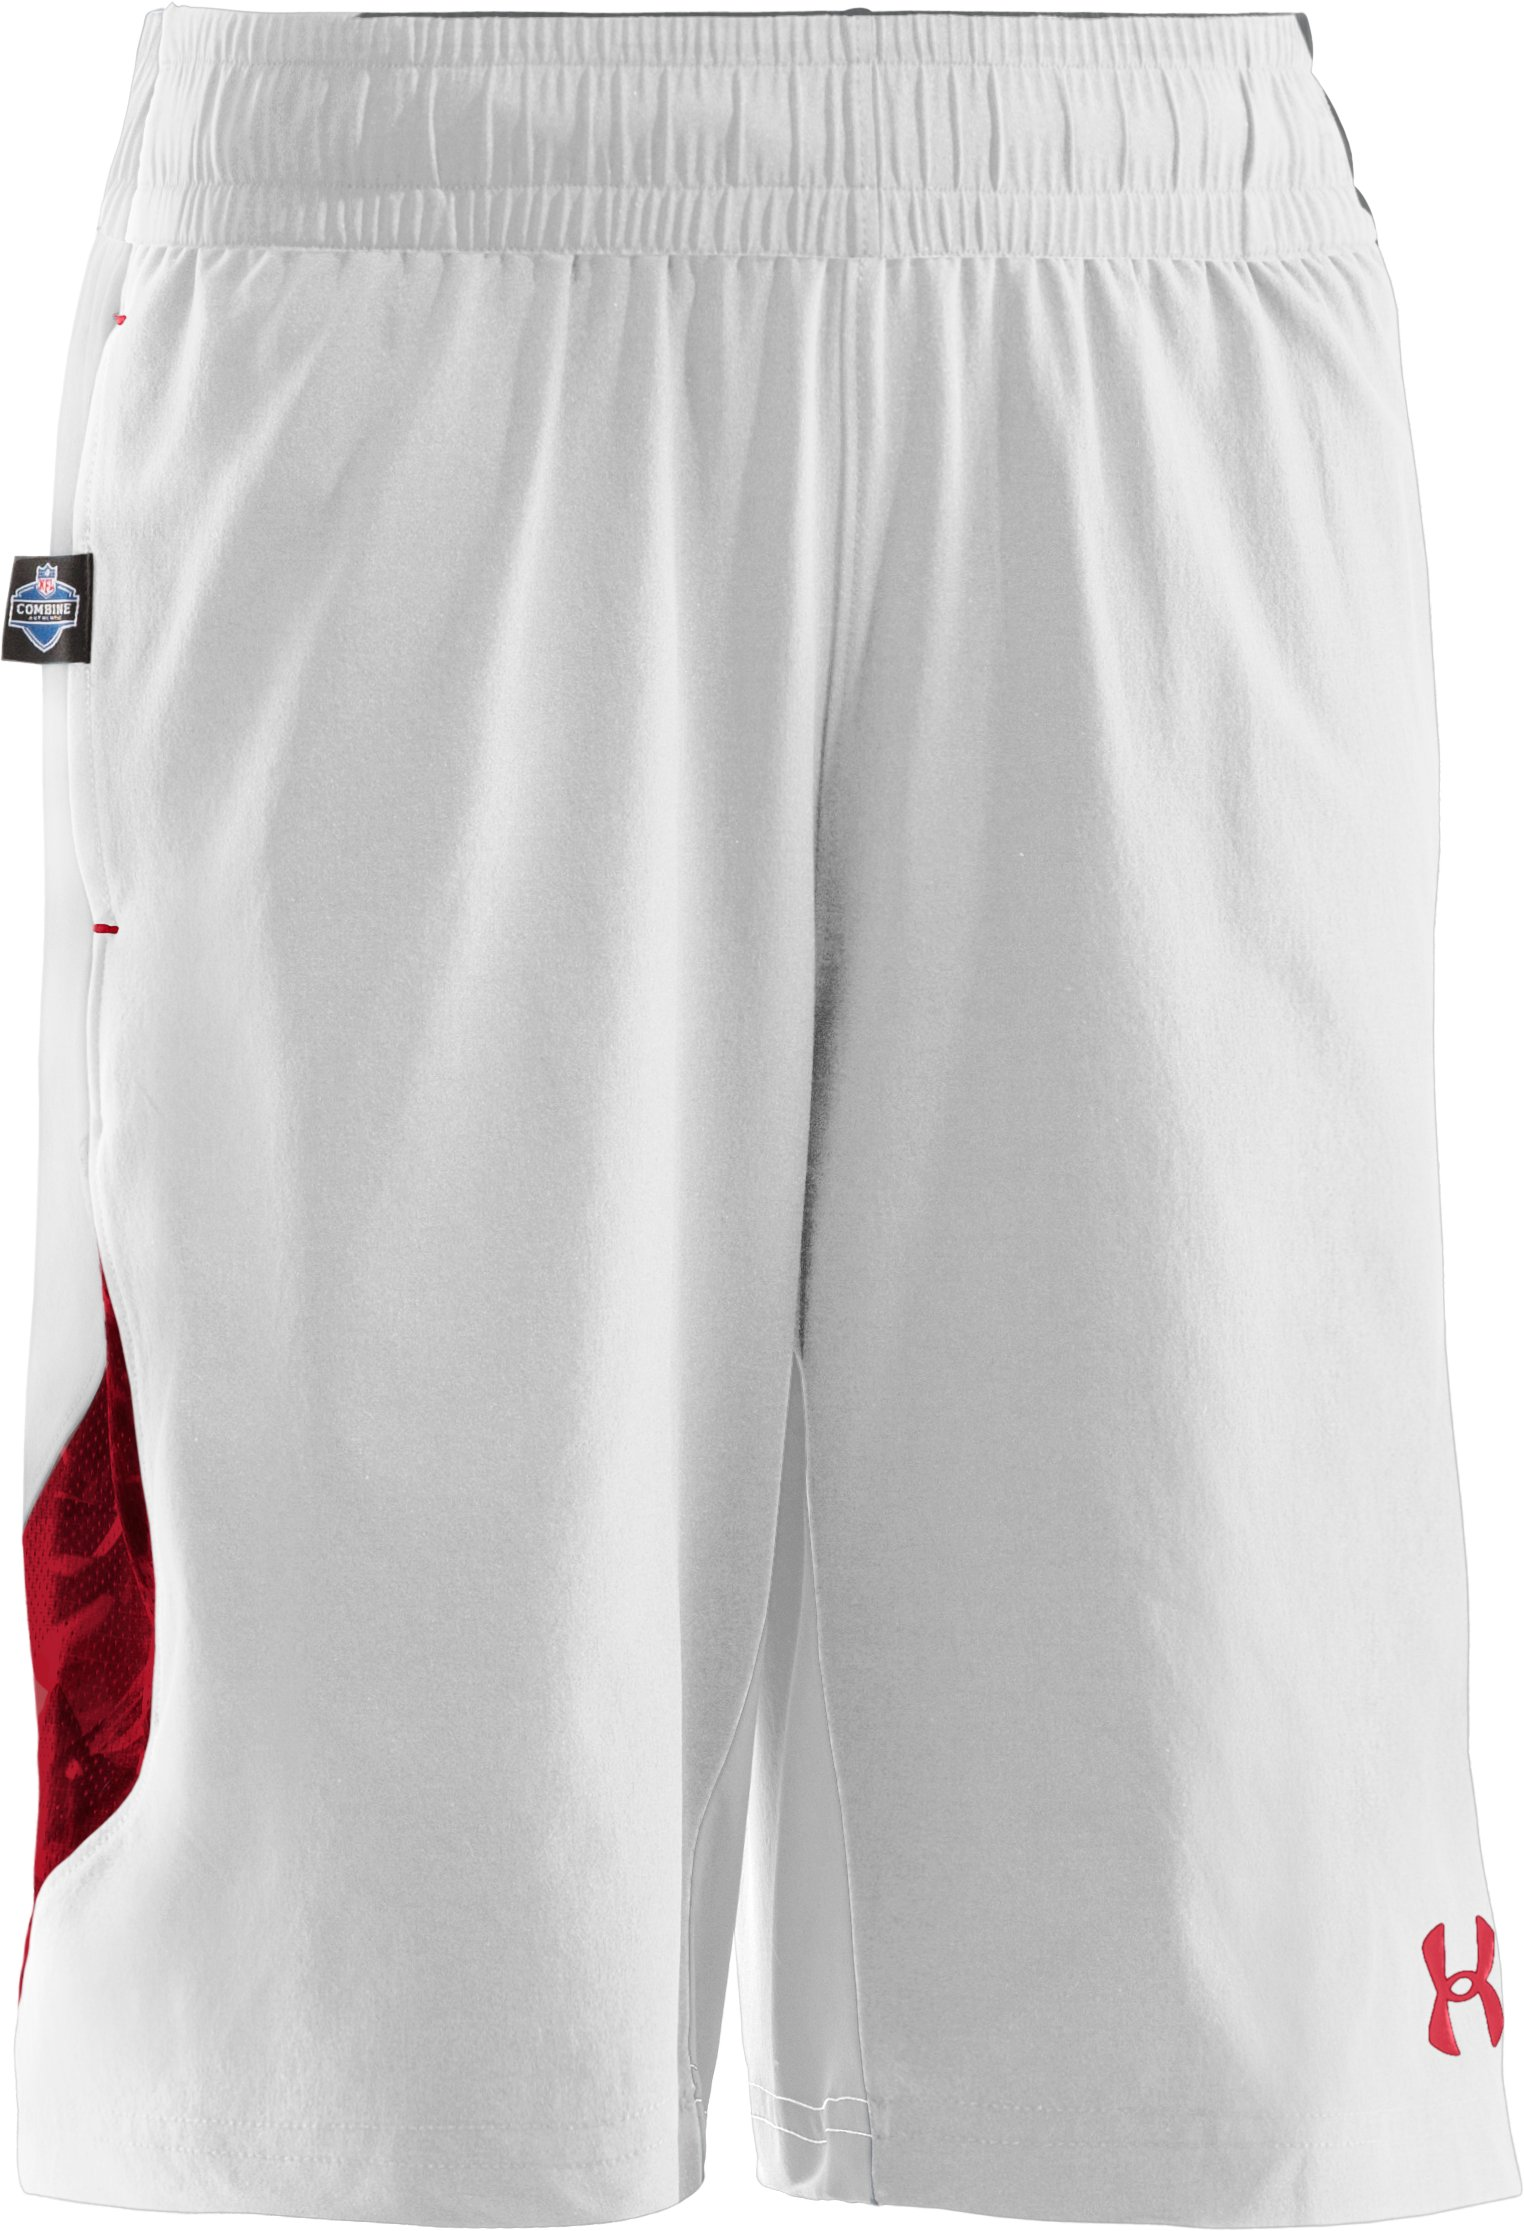 Boys' NFL Combine Authentic Shorts, White, zoomed image